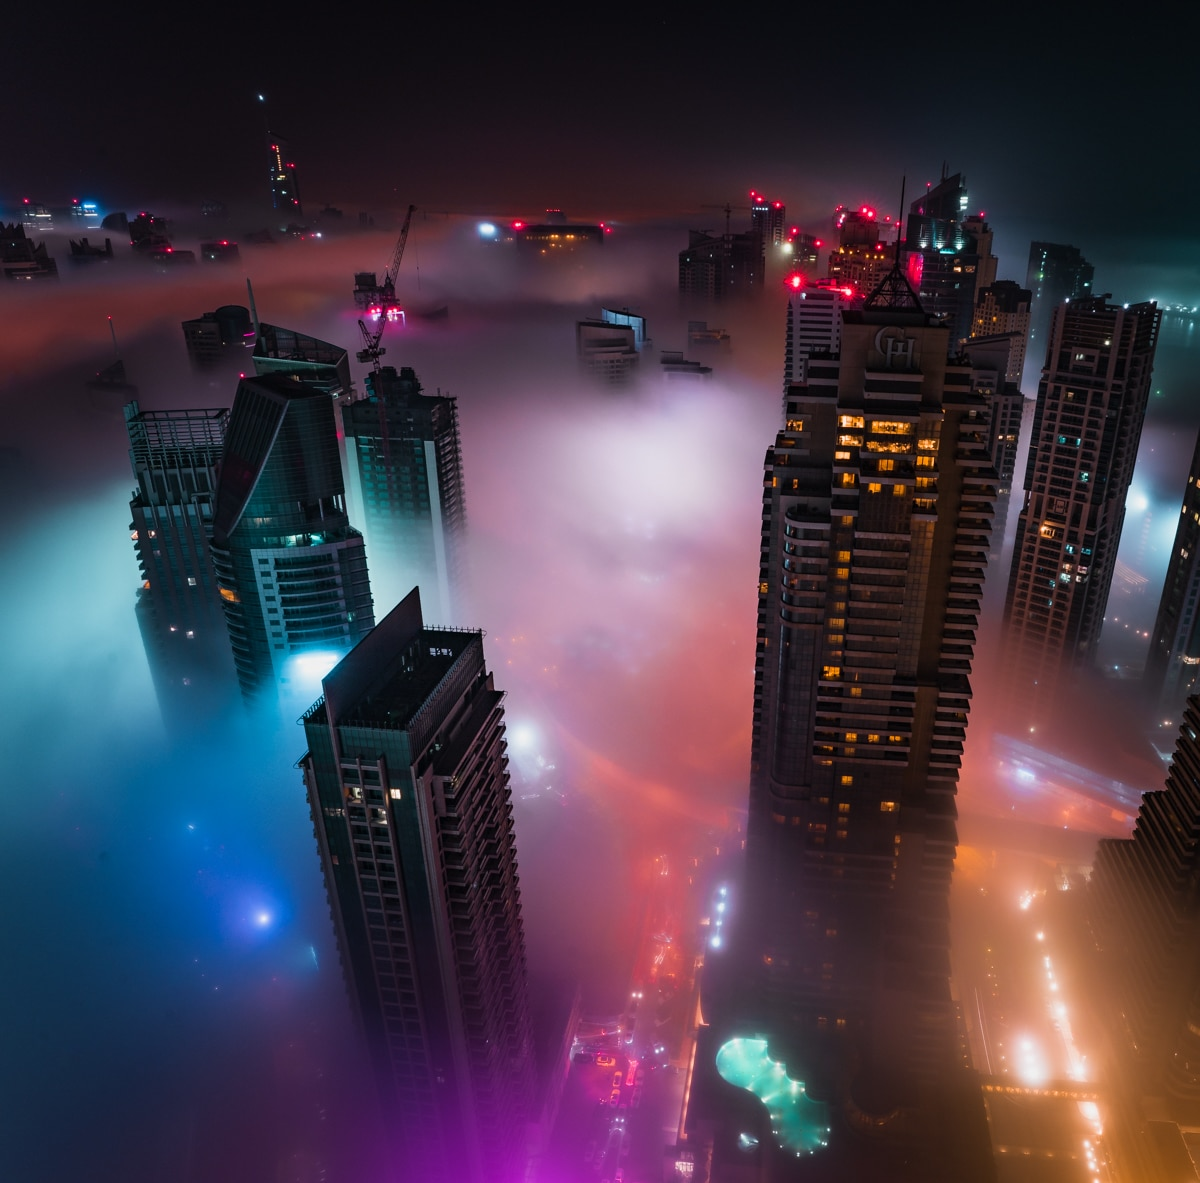 Aerial View of City Covered in Fog